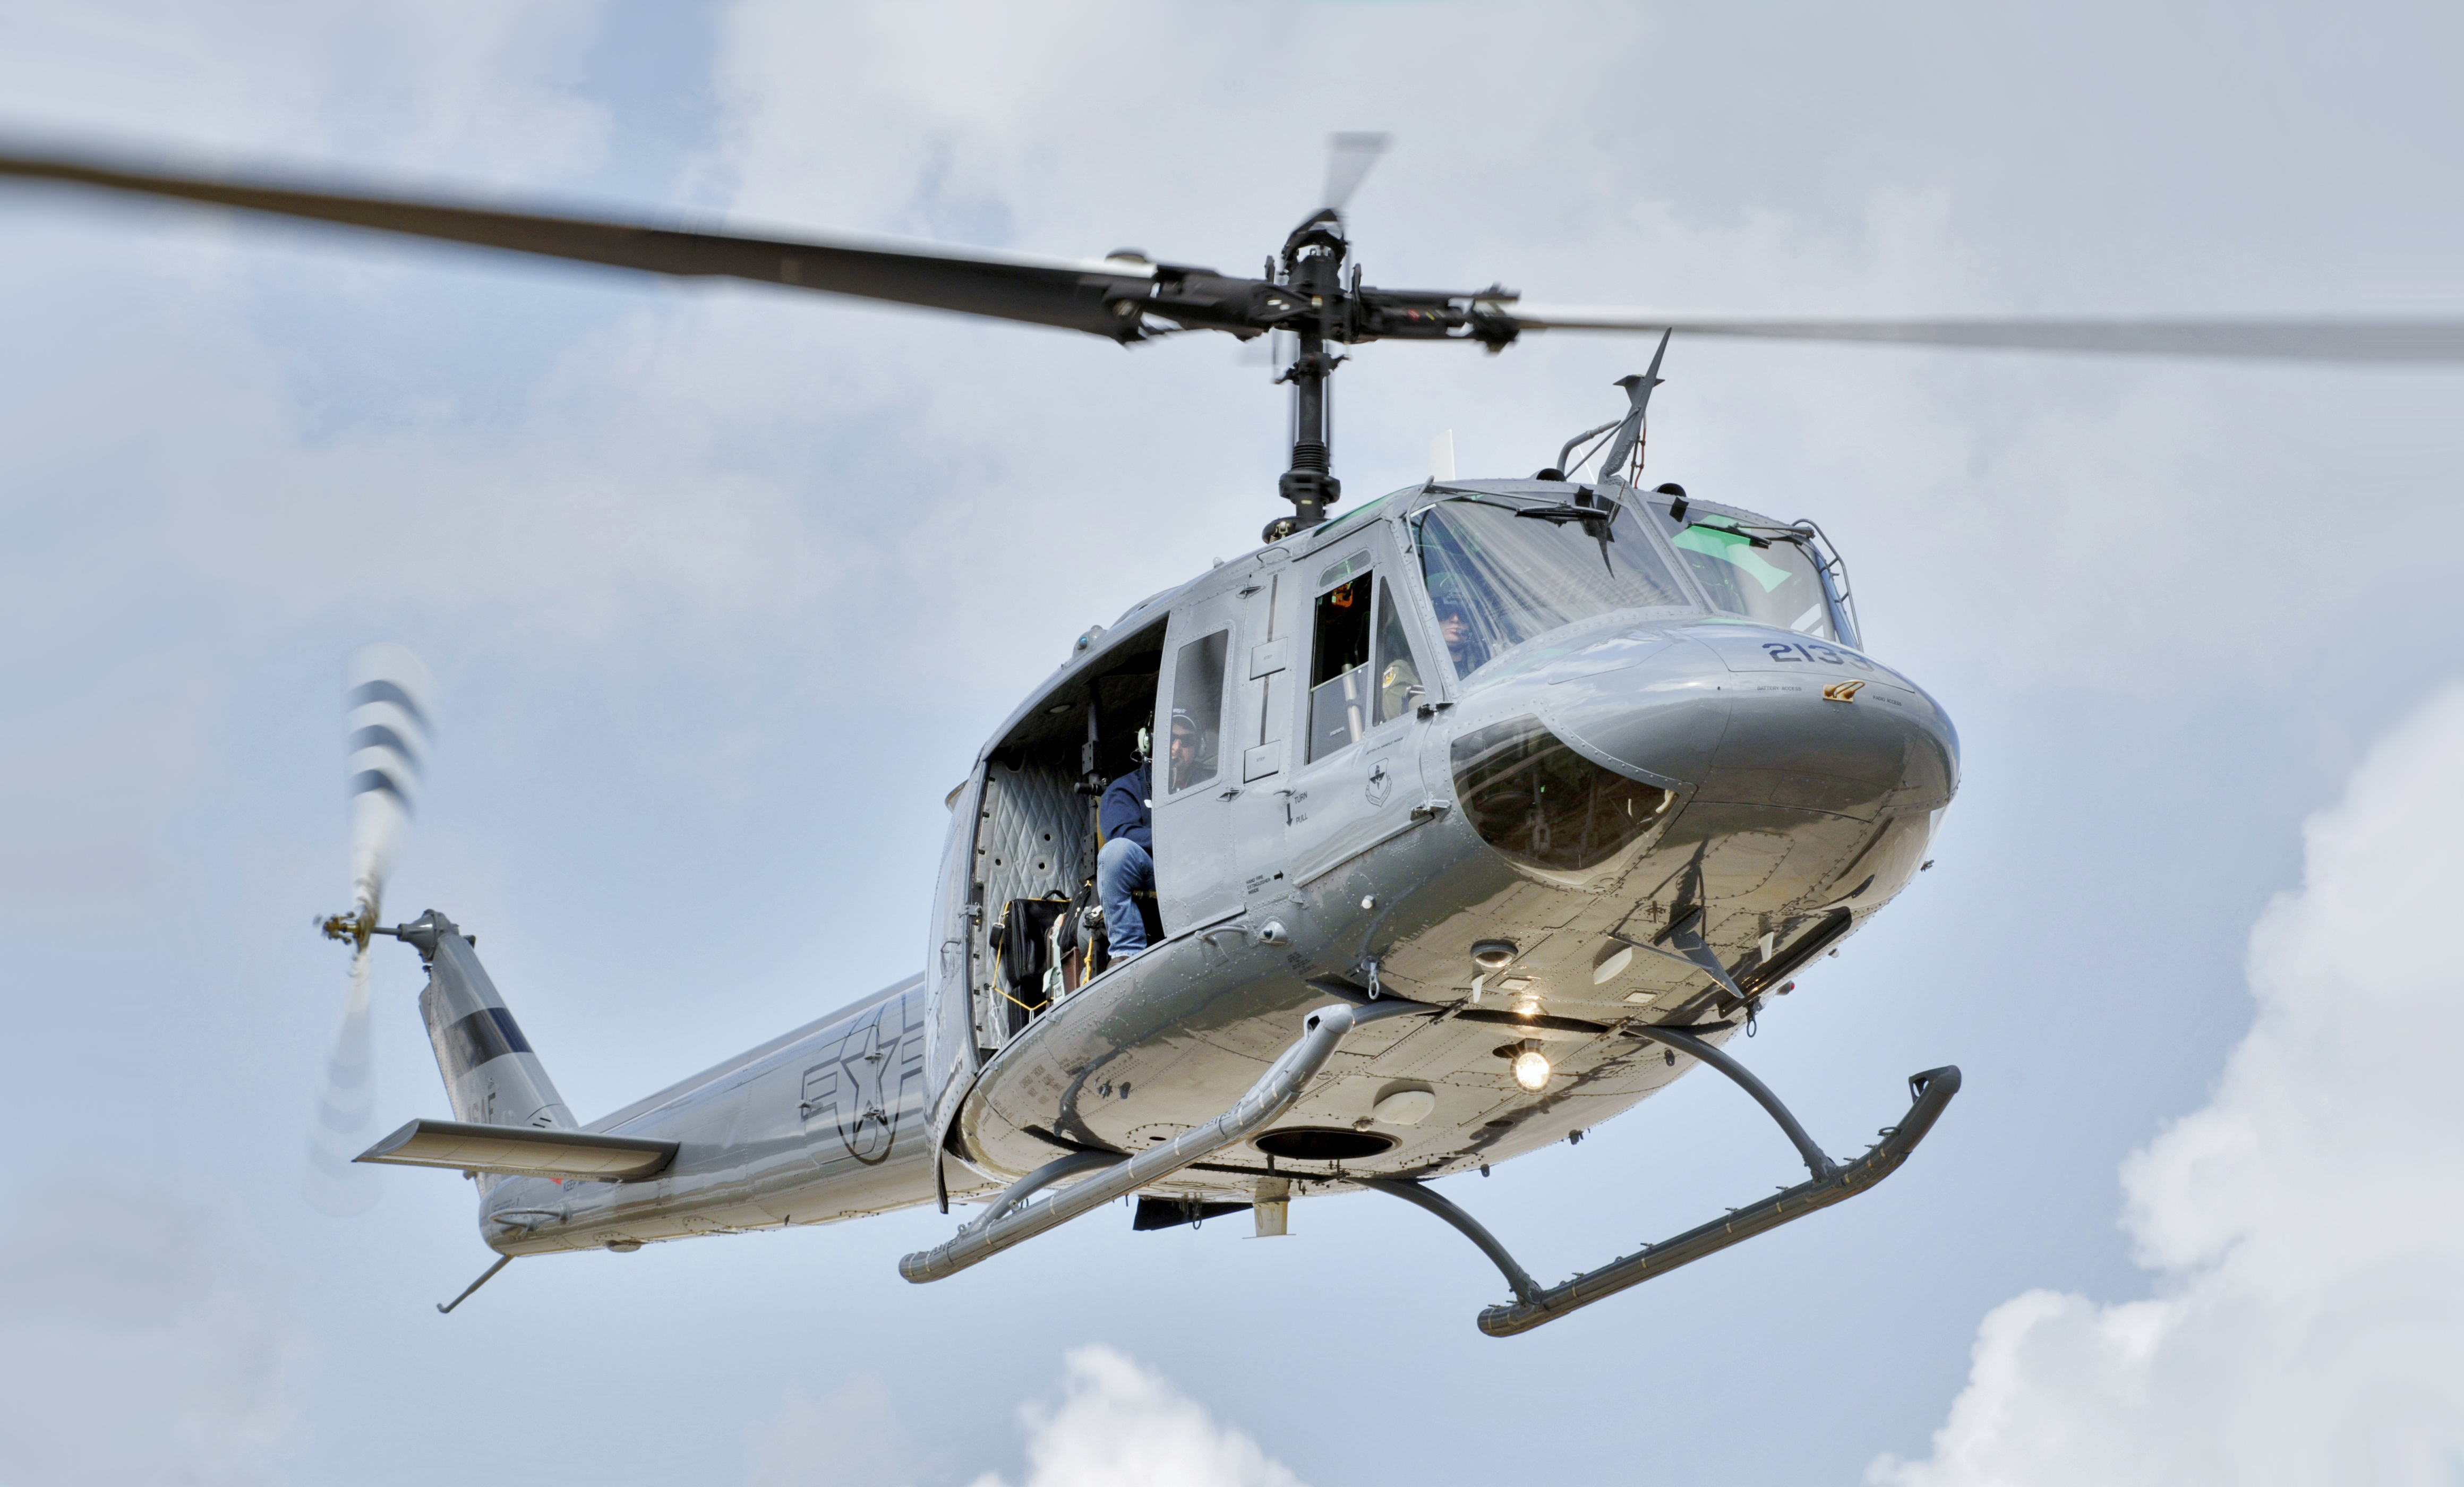 uh 1 helicopter for sale with File U S  Air Force Th 1 Huey on 8299629089 besides So Thats Wouldnt Chinese Make Crashed SEAL Team Six Stealth Helicopter Childs Toy in addition Brickmania Vietnam War Kit Archive likewise 1433 moreover Bell UH 1 Iroquois.